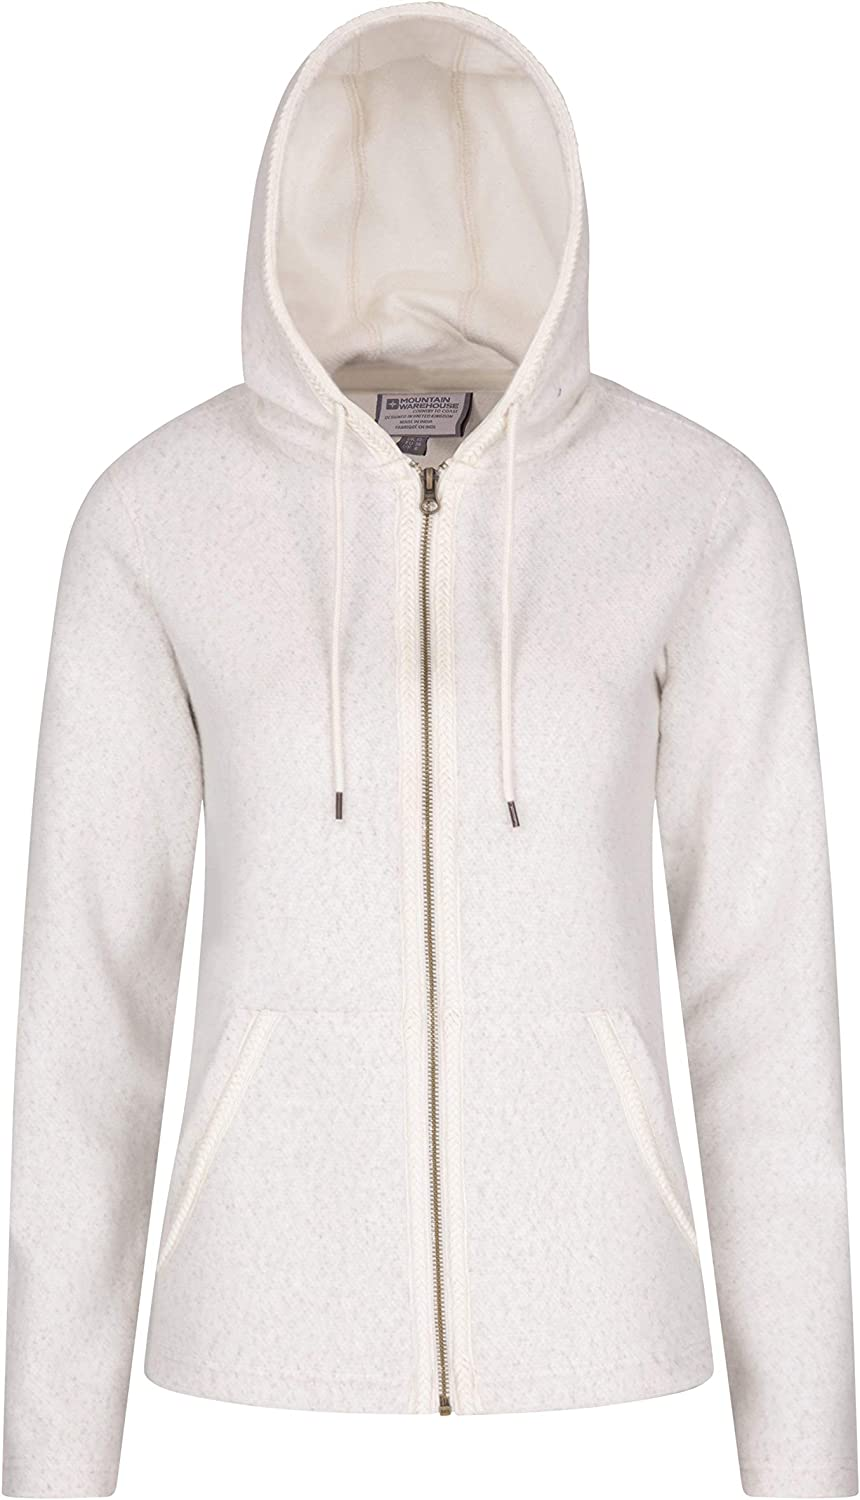 Hiking /& Daily Use Warm /& Cosy Ideal Jumper for Travelling Full Zip Pullover Casual Ladies Sweatshirt Mountain Warehouse Elder Womens Hoodie